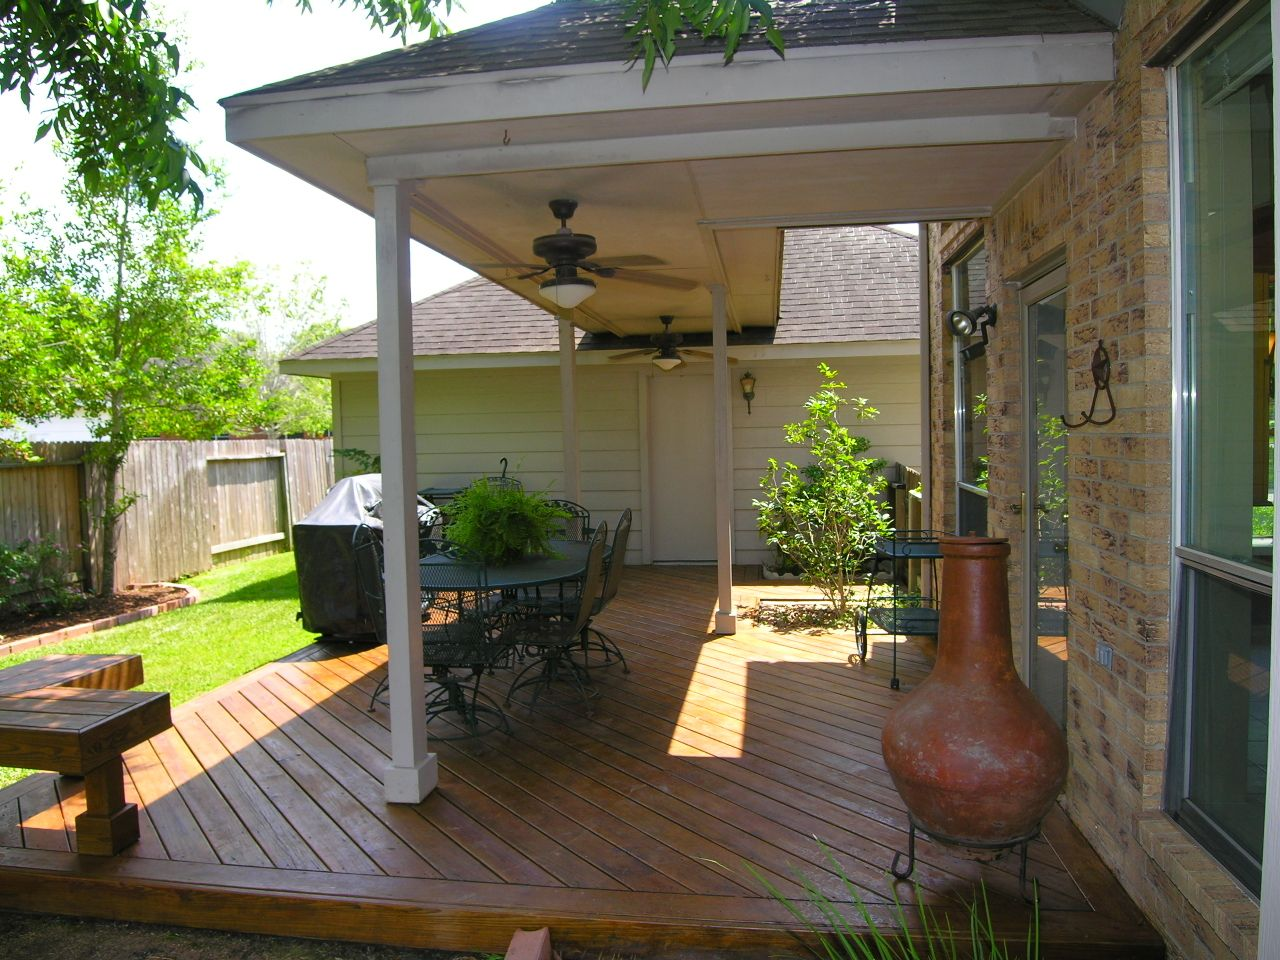 Covered Patio Designs Very Nice Deck Covered Patio Great Place To Watch Kids Play Or Just Small Backyard Patio Covered Patio Design Patio Landscaping